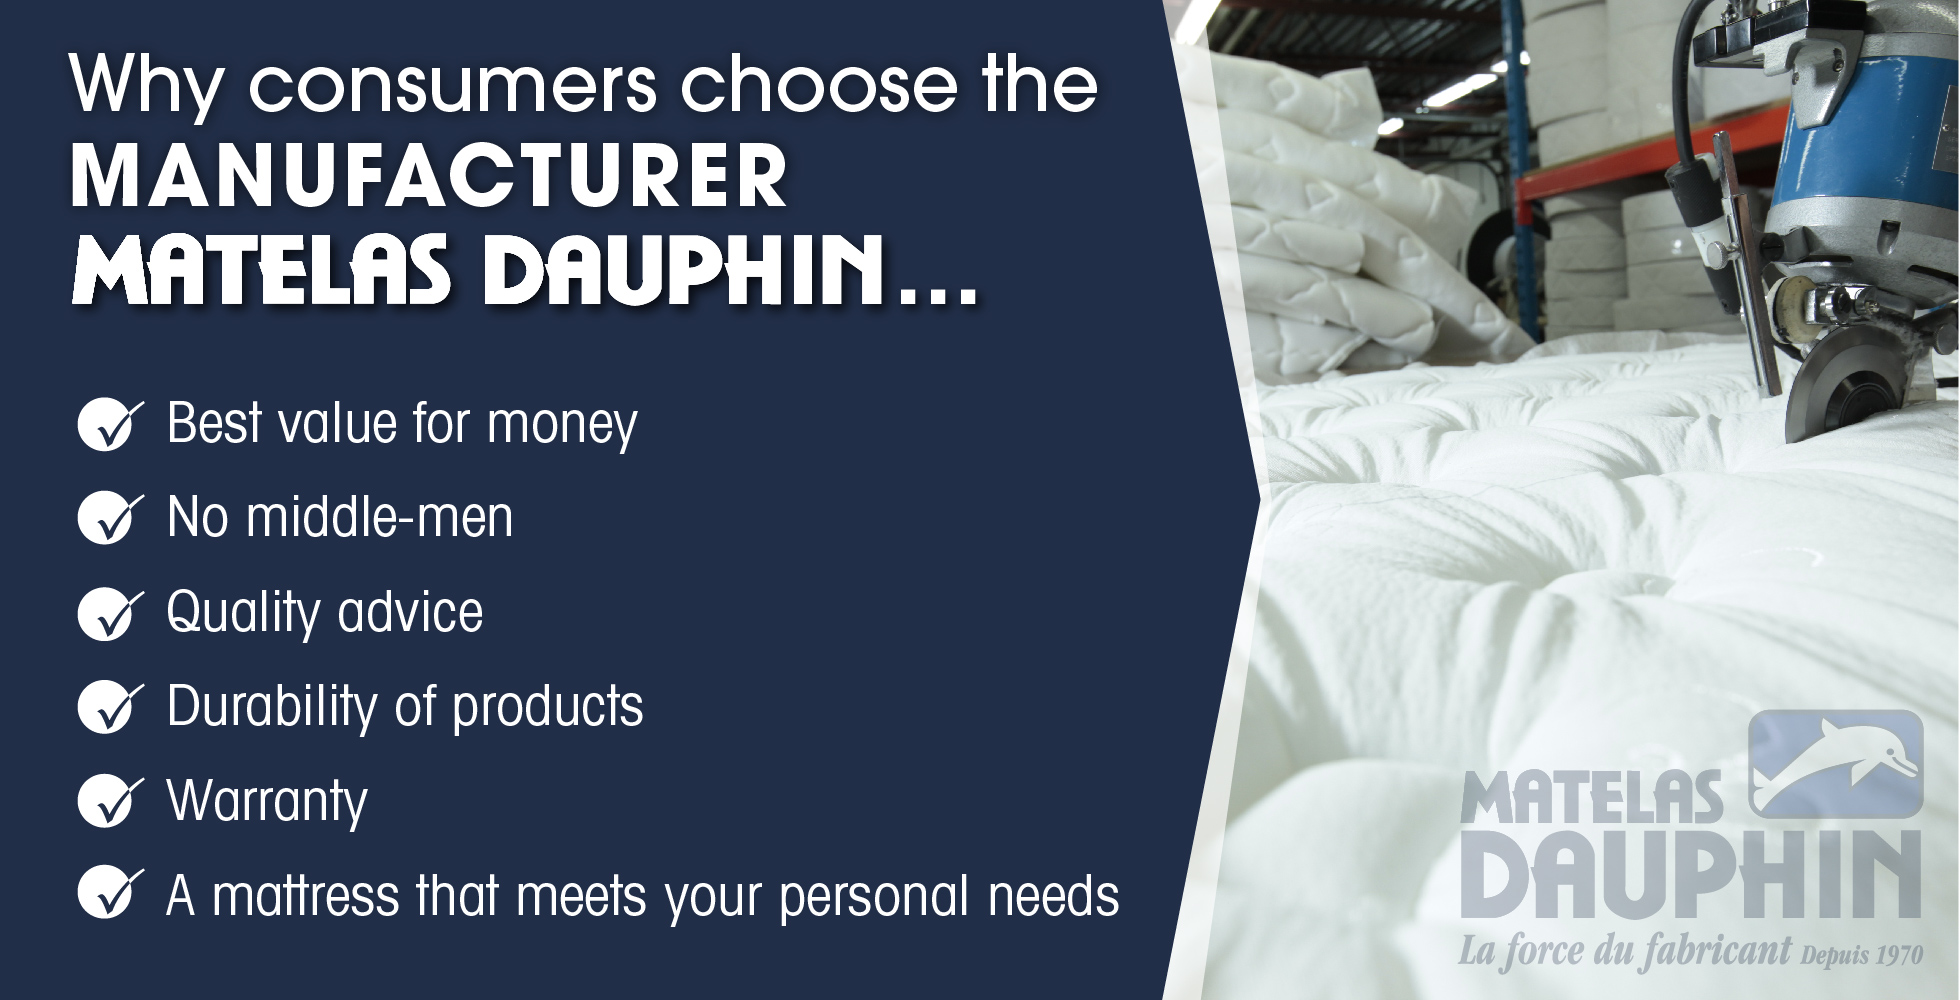 Why customers choose the manufacturer Matelas Dauphin